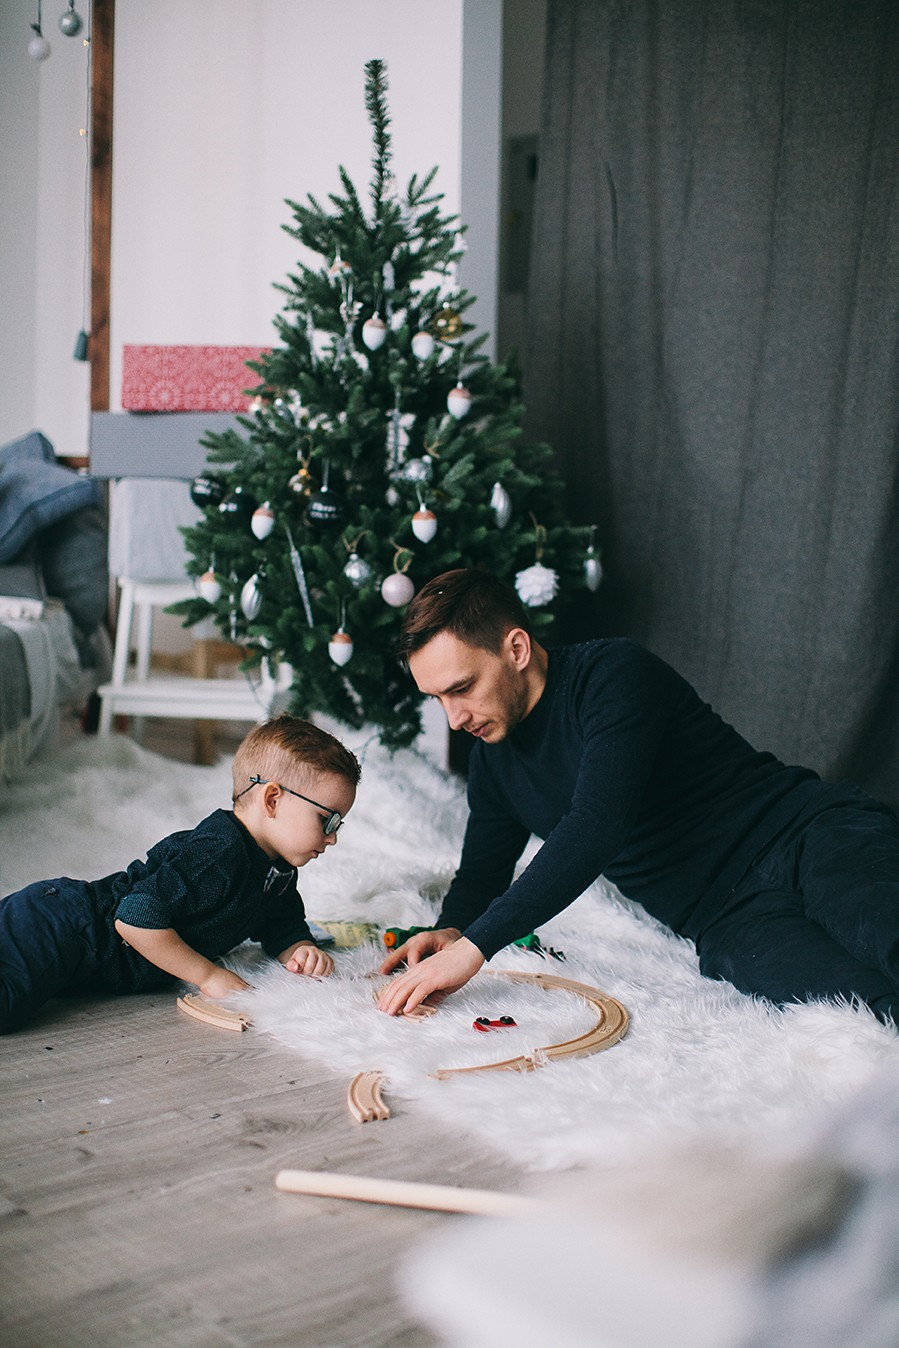 Best of Christmas Project